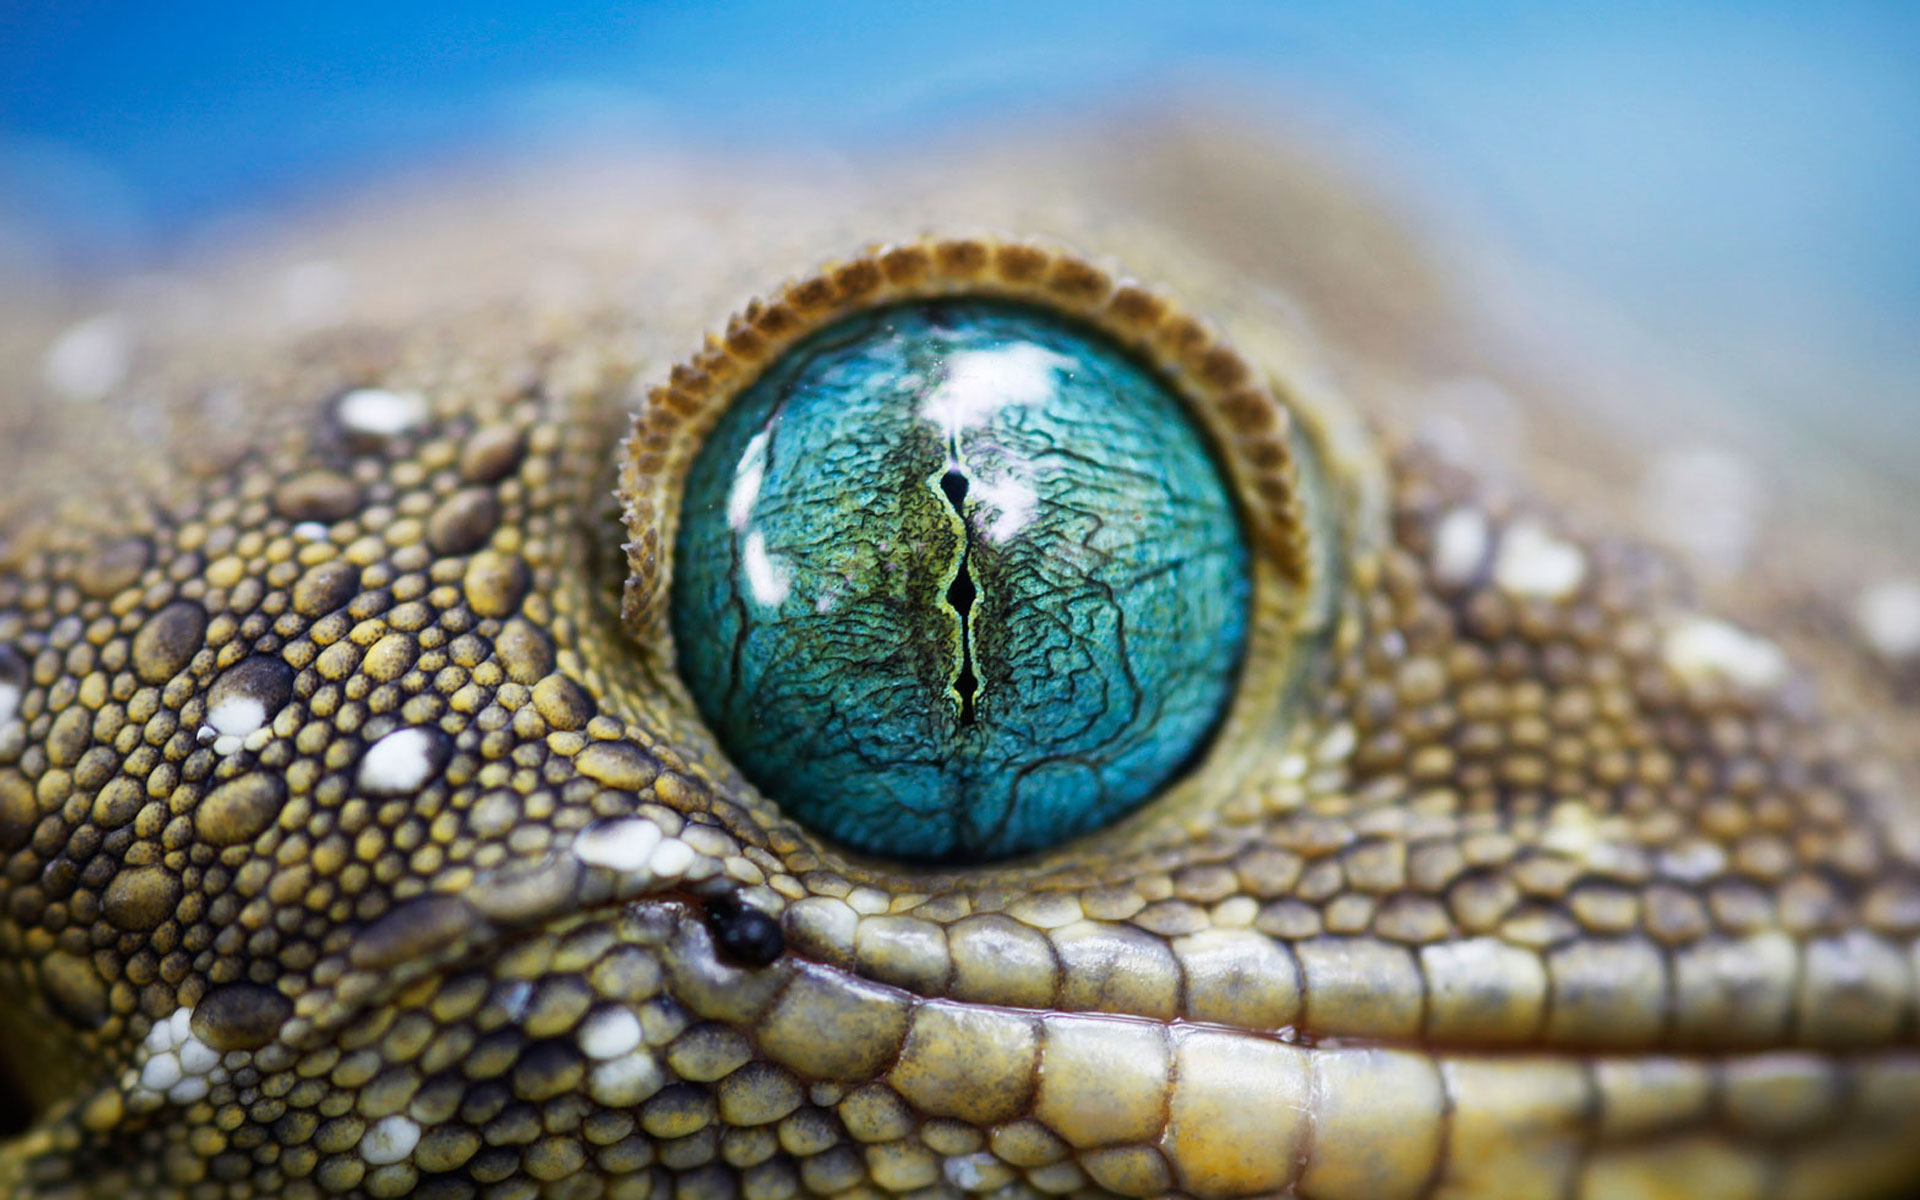 lizards images free